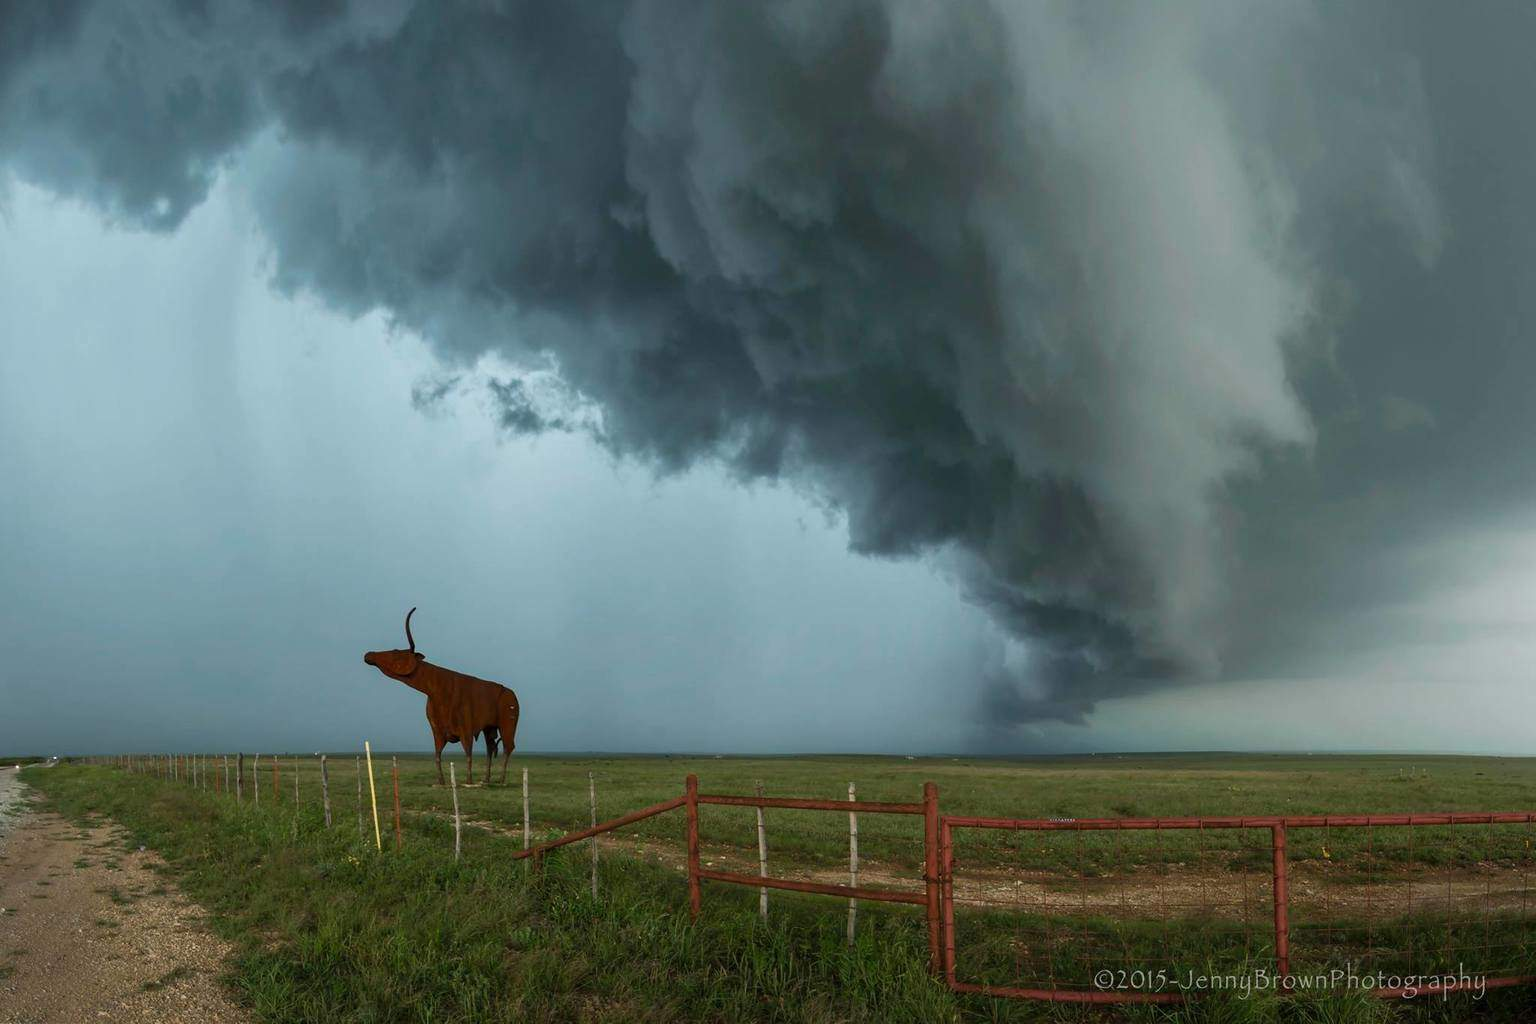 West of Throckmorton, Texas this past Friday, May 8th. I've waited so many years to get just this shot....